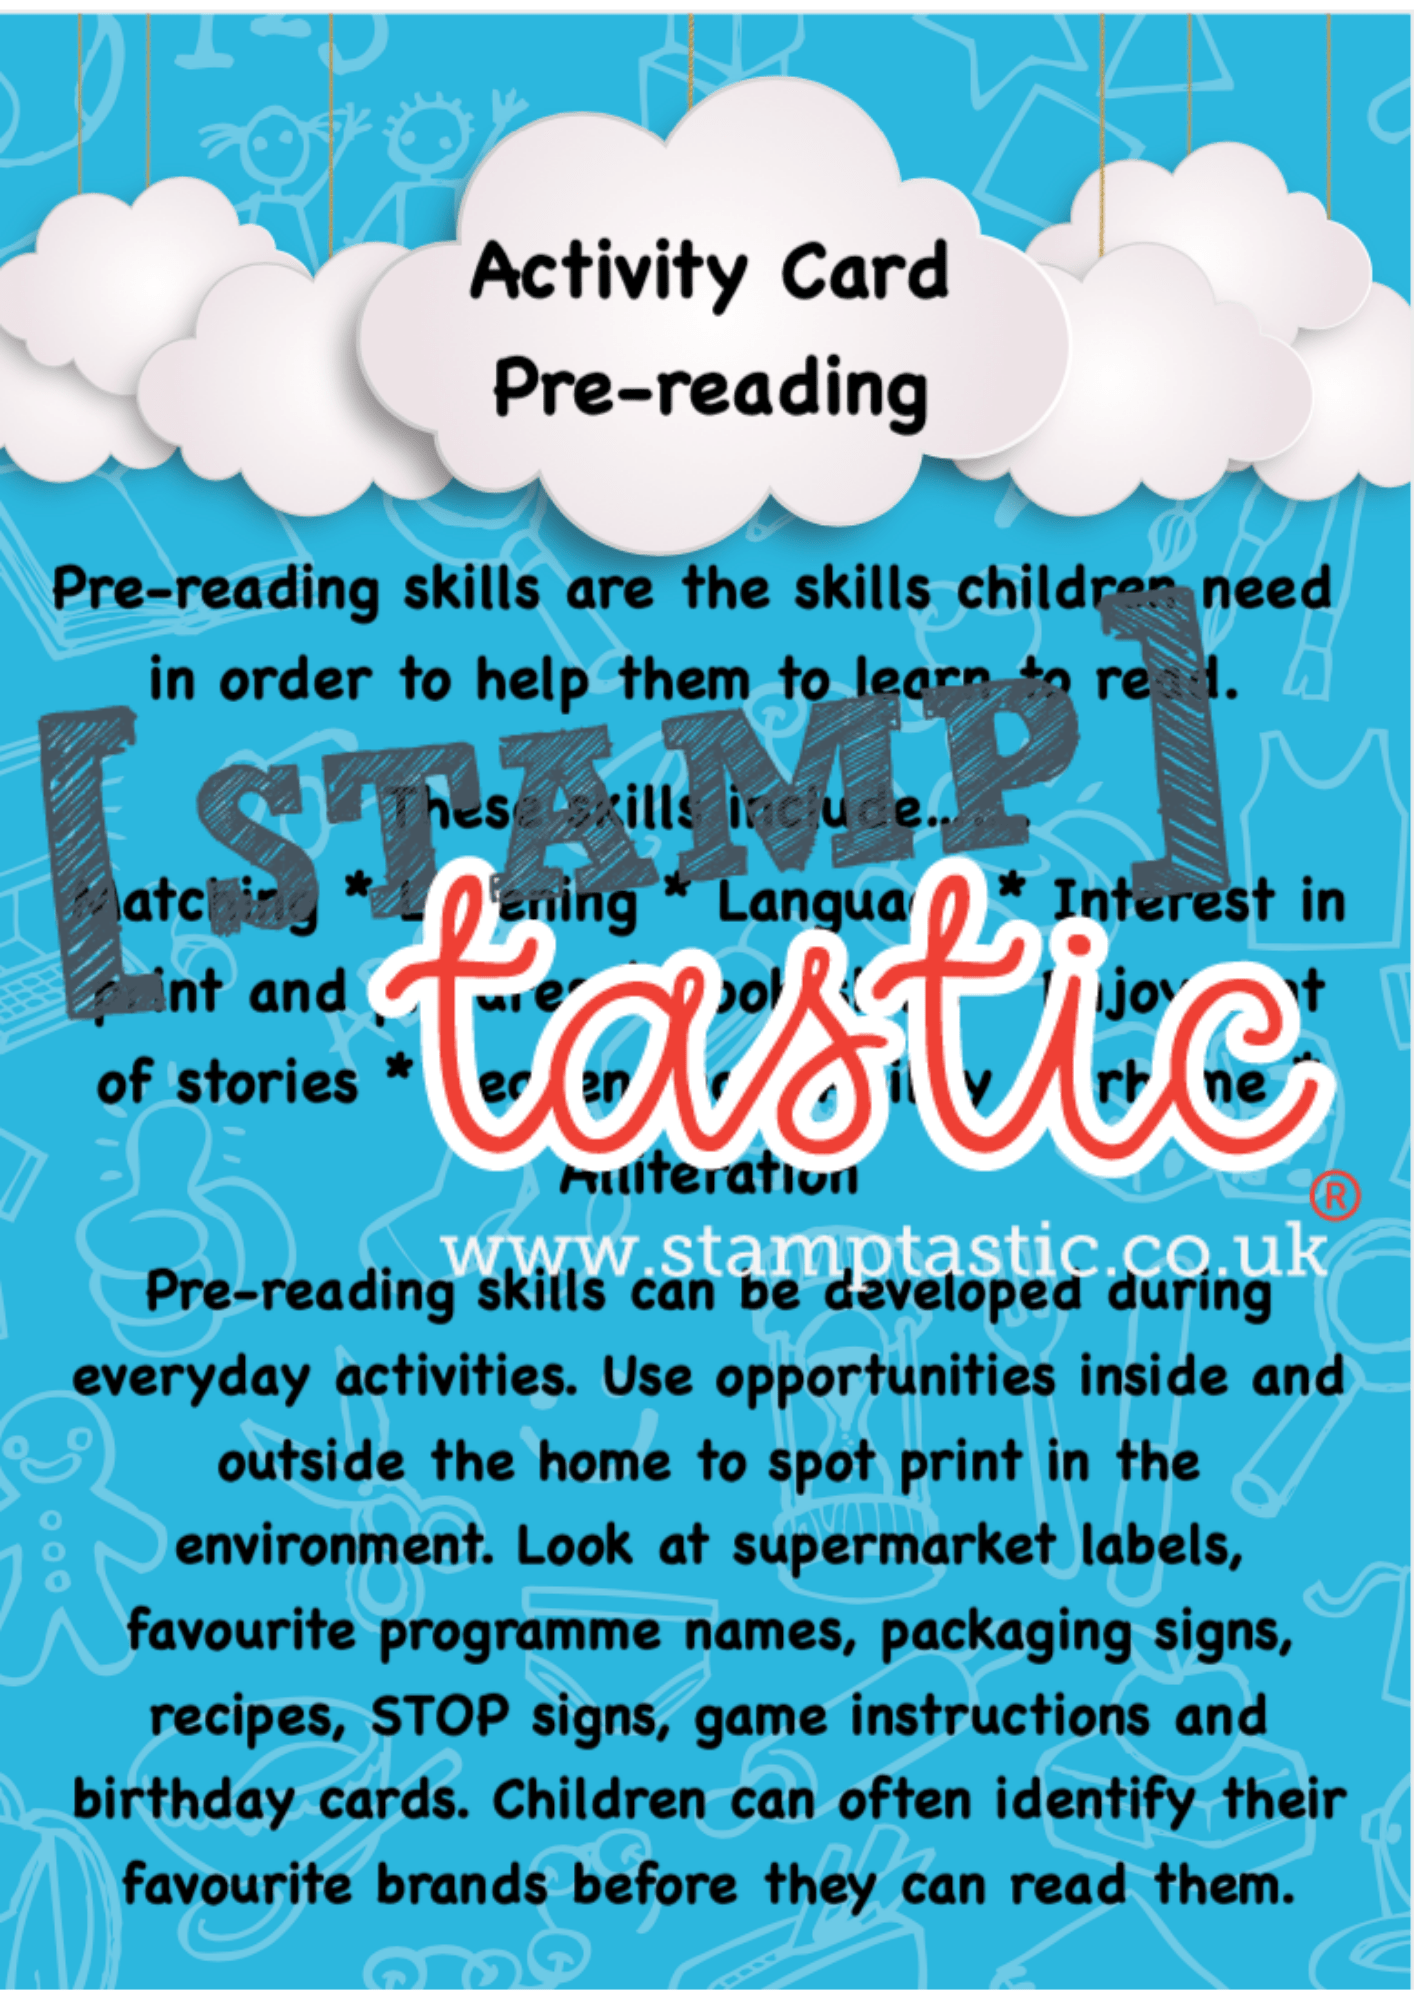 Starting School Free Resource: Pre Reading Activity Card - stamptastic-uk